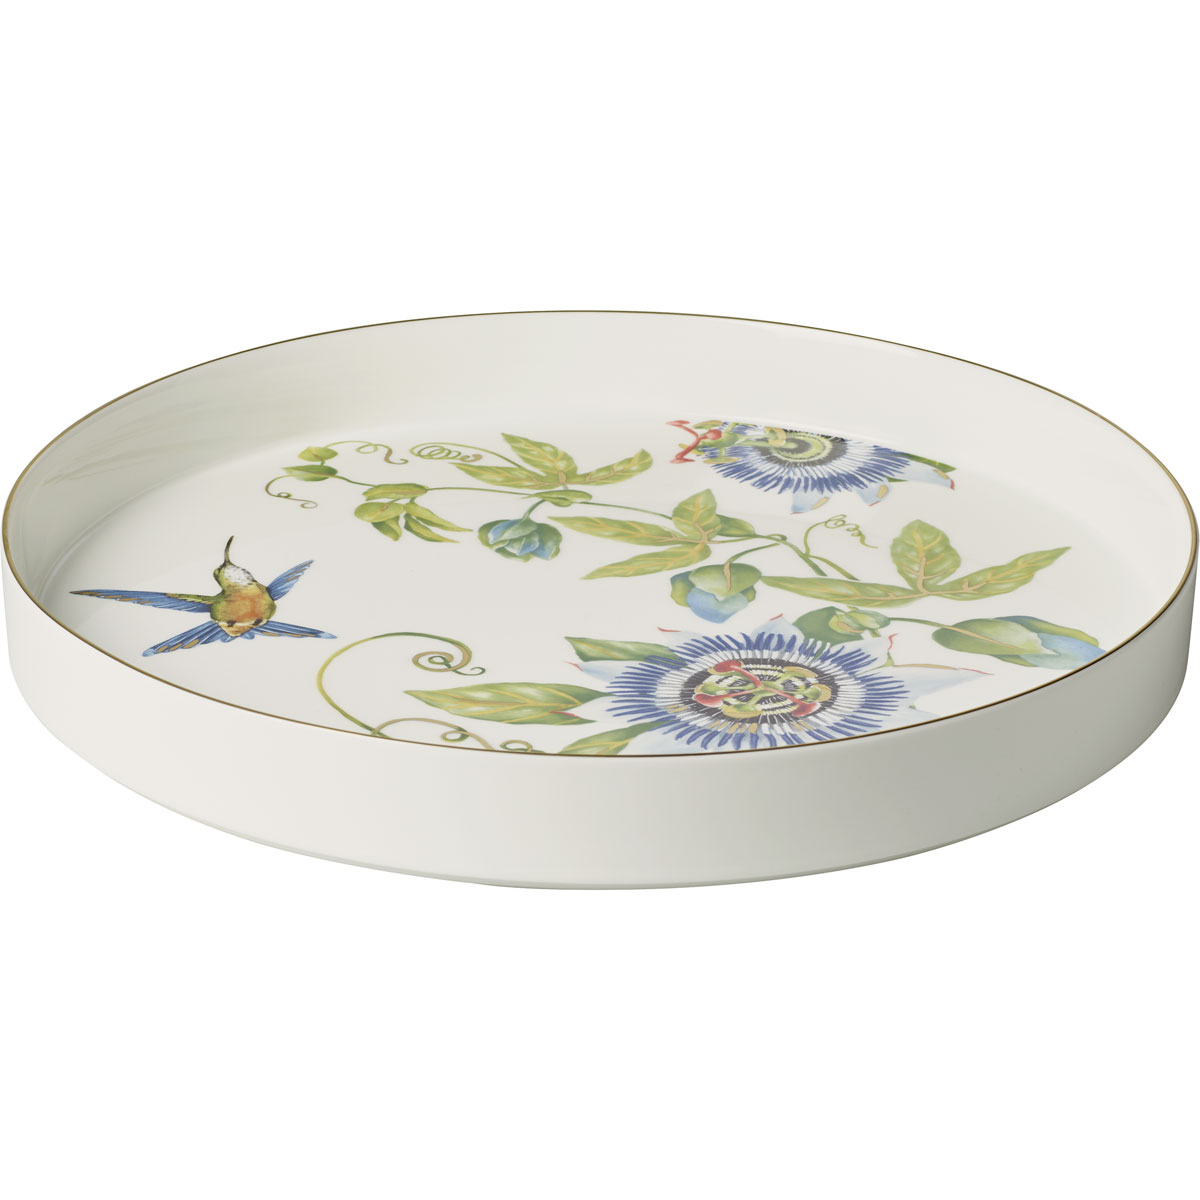 Villeroy and Boch Amazonia Round Decorative Tray 13""